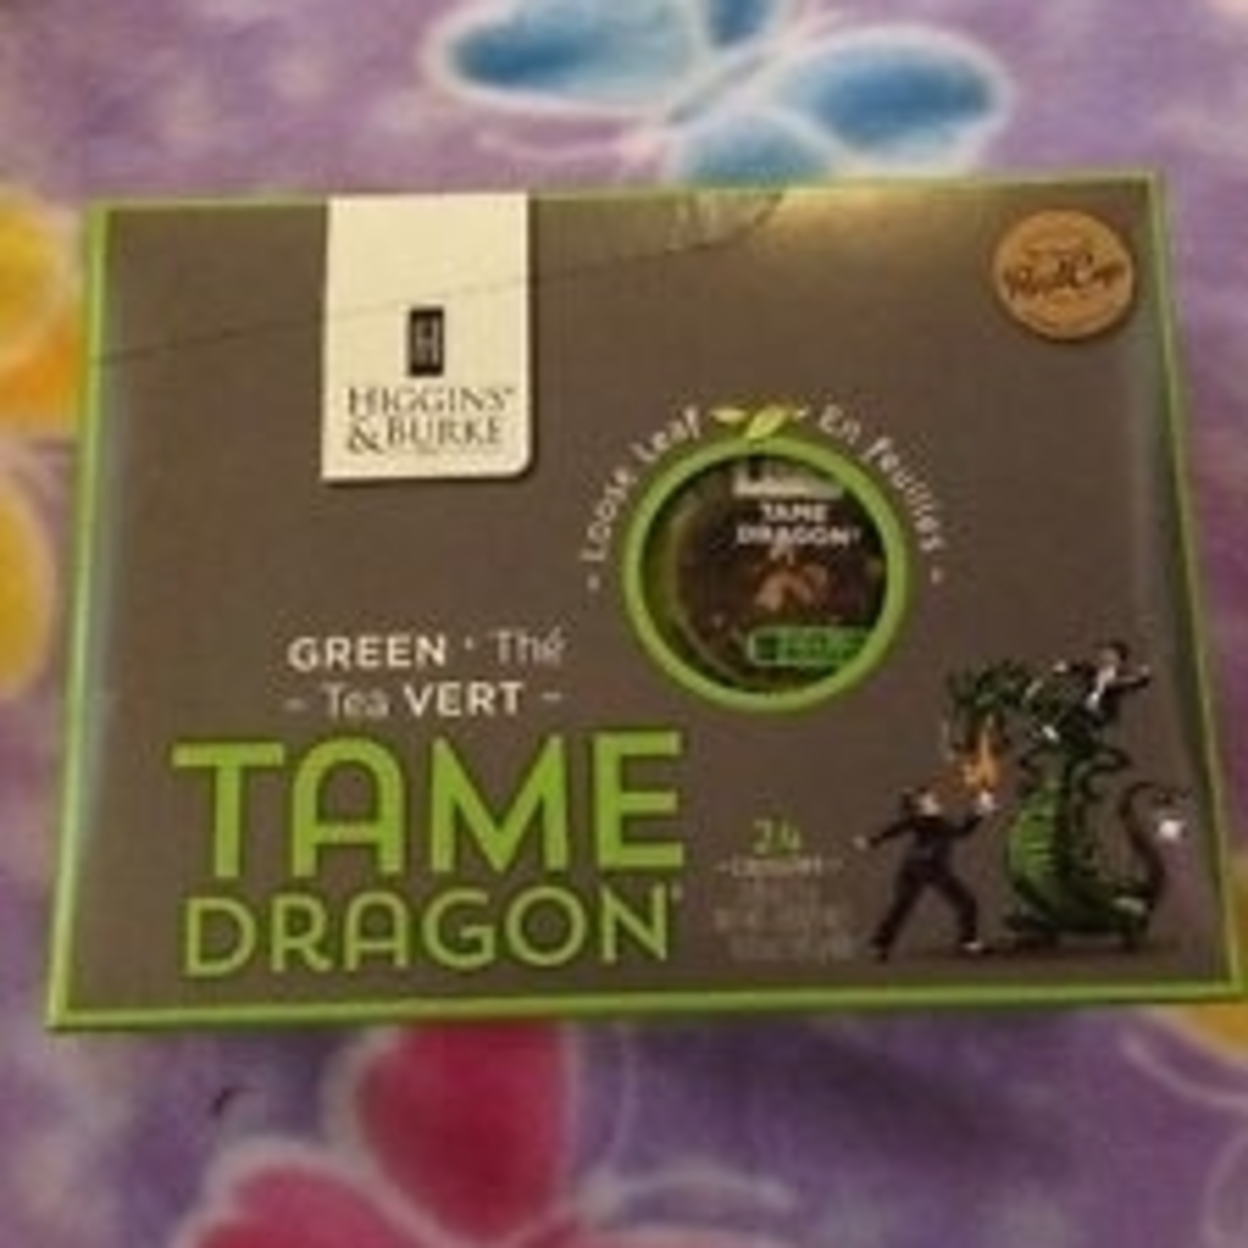 Coffee To You Hbrb3028814-24 Real Cup Tame Dragon ECO Cuptea, Pack of 24 59f0b75ce224615ade15ad3f